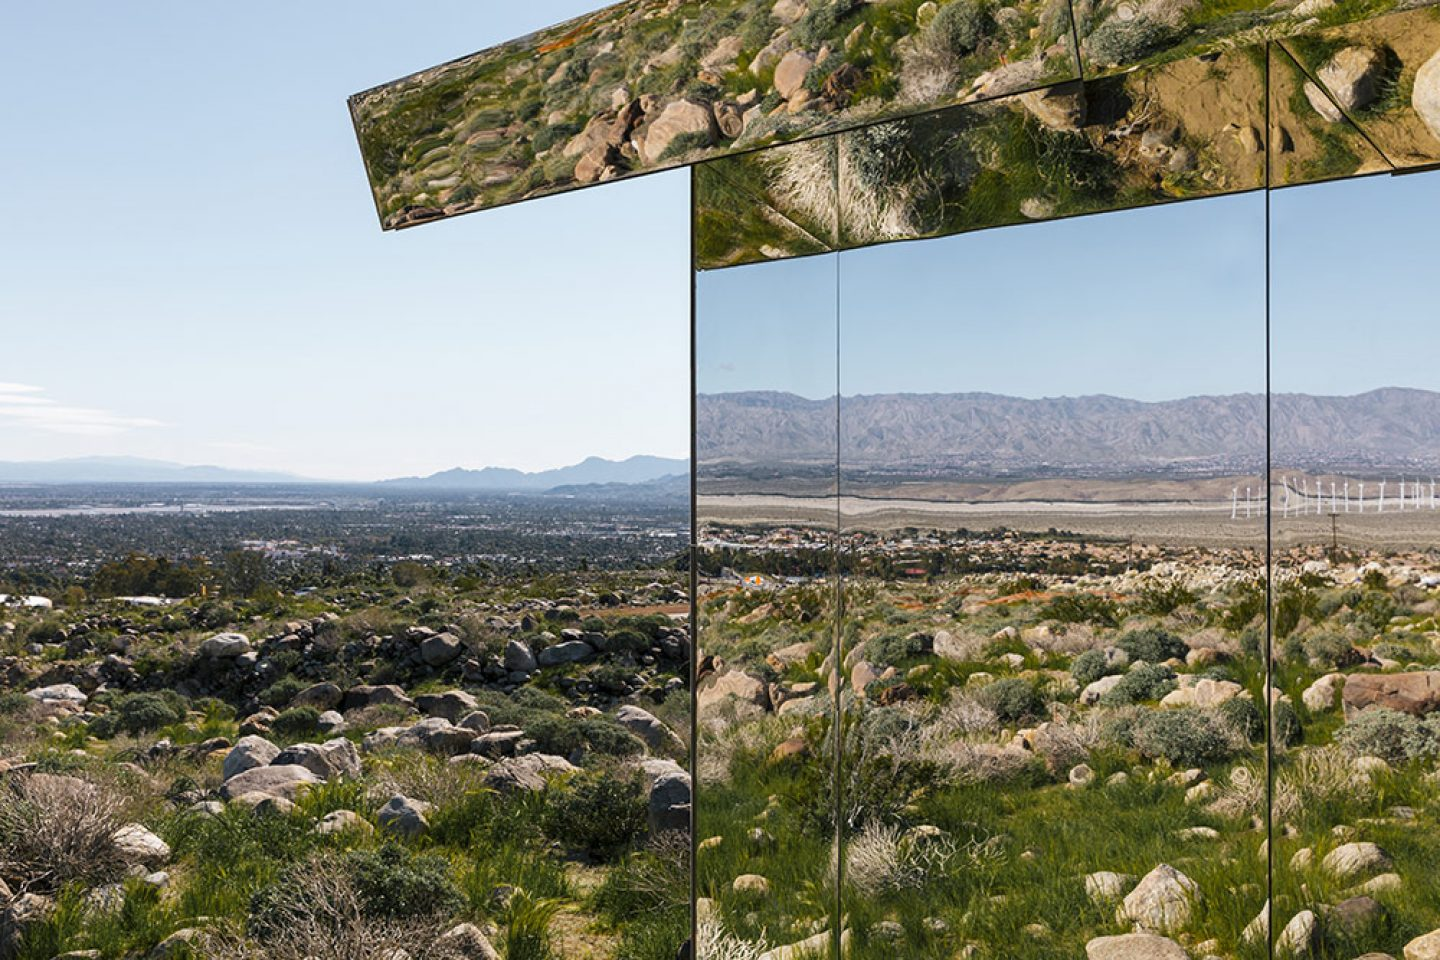 Art_Doug_Aitken_Mirrored_Mirage_6